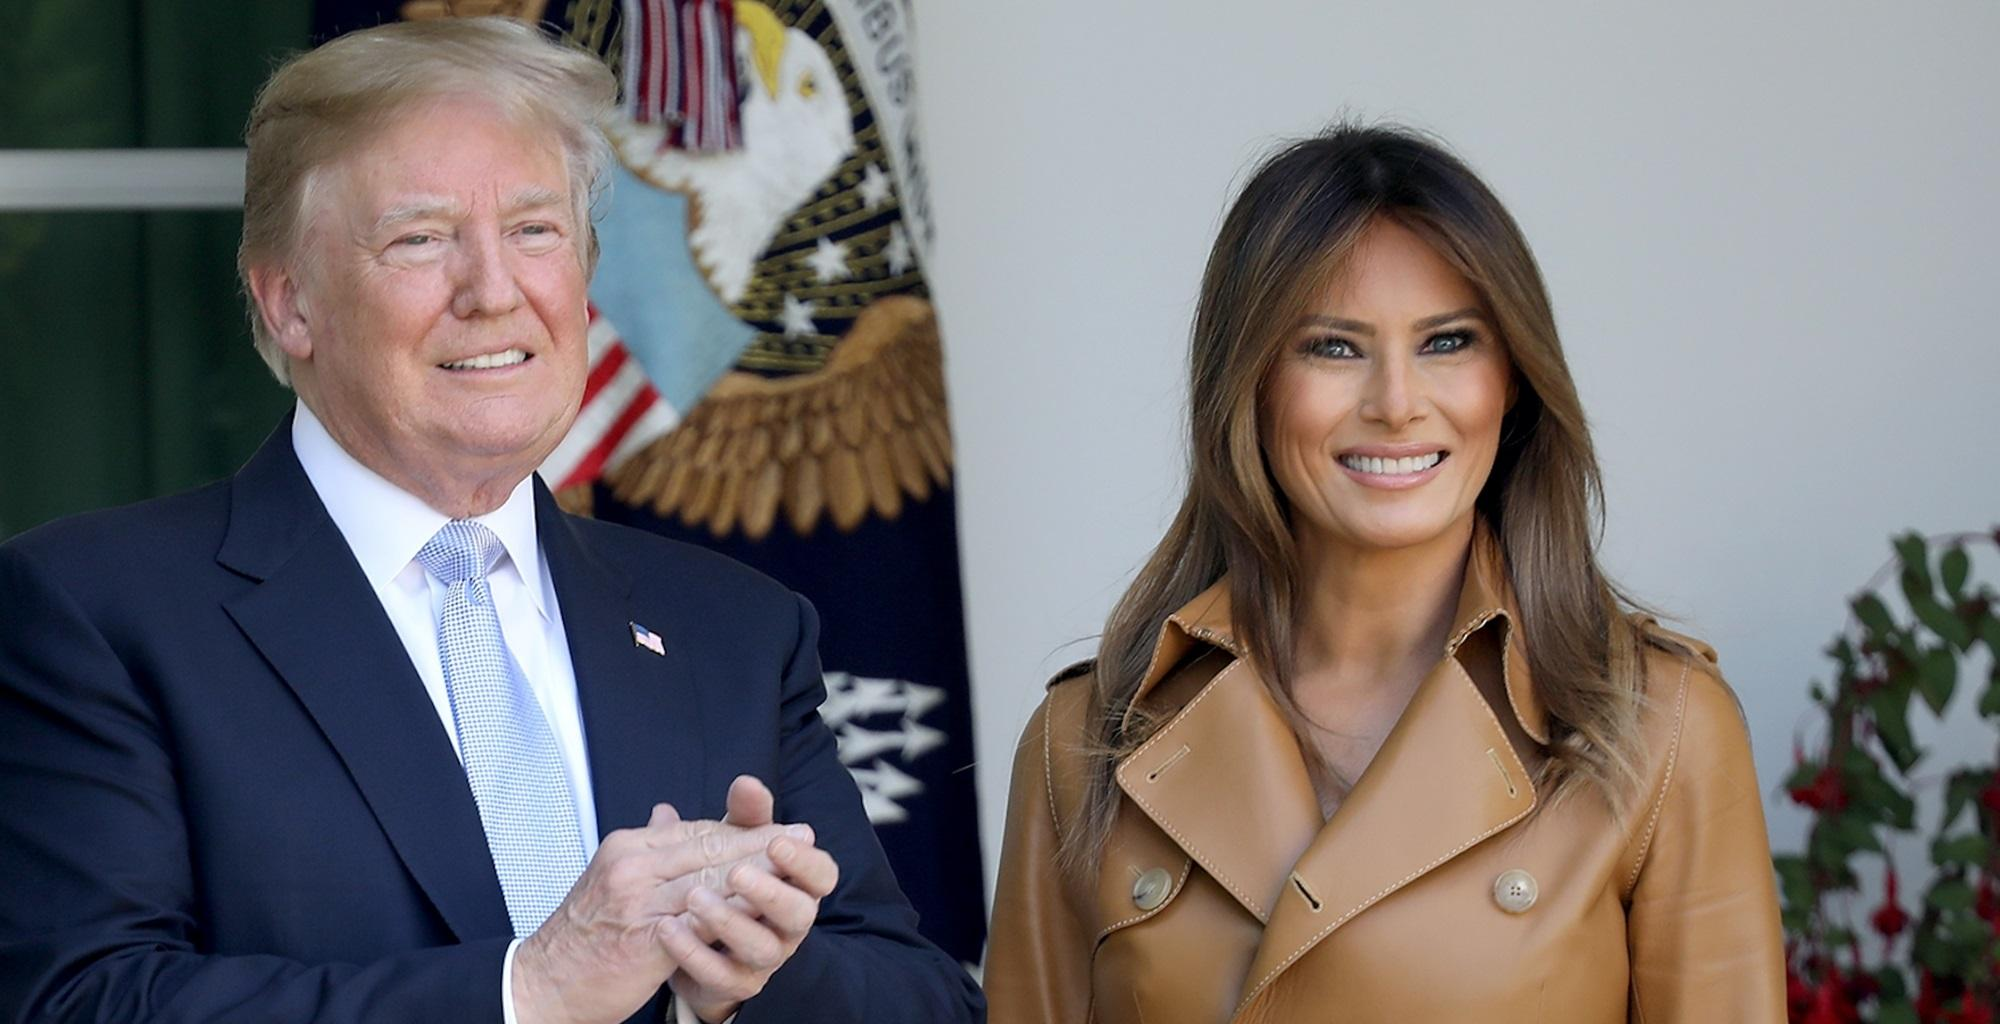 Melania Trump Joins The Donald On The Teen Bashing Train Of Greta Thunberg After Getting Angry Because A Professor Mentioned Her Son, Barron